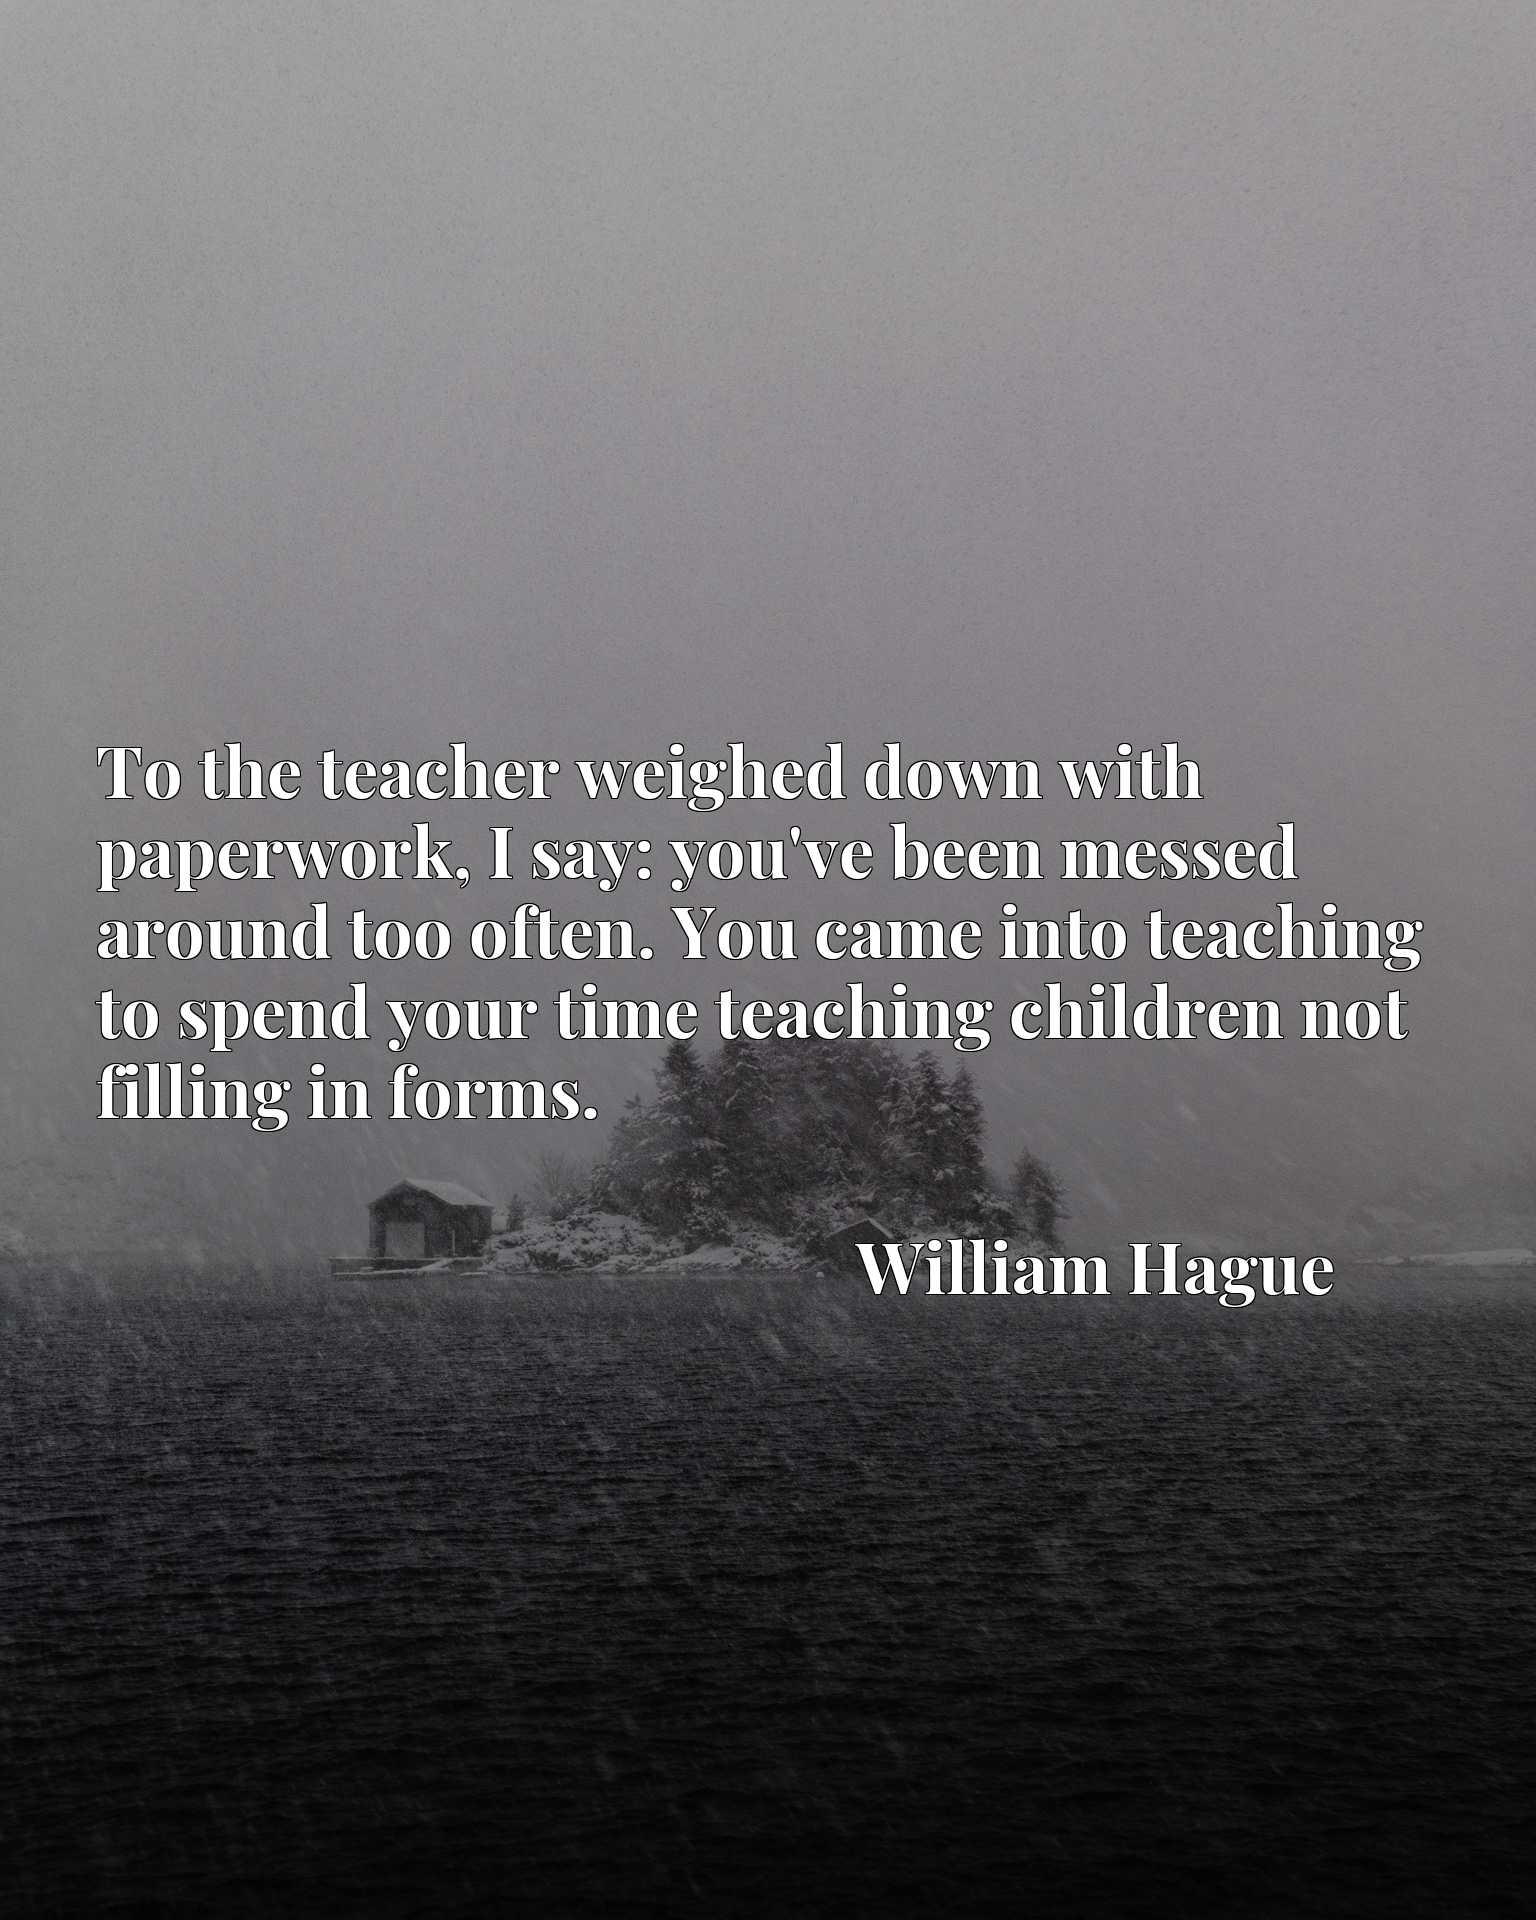 To the teacher weighed down with paperwork, I say: you've been messed around too often. You came into teaching to spend your time teaching children not filling in forms.